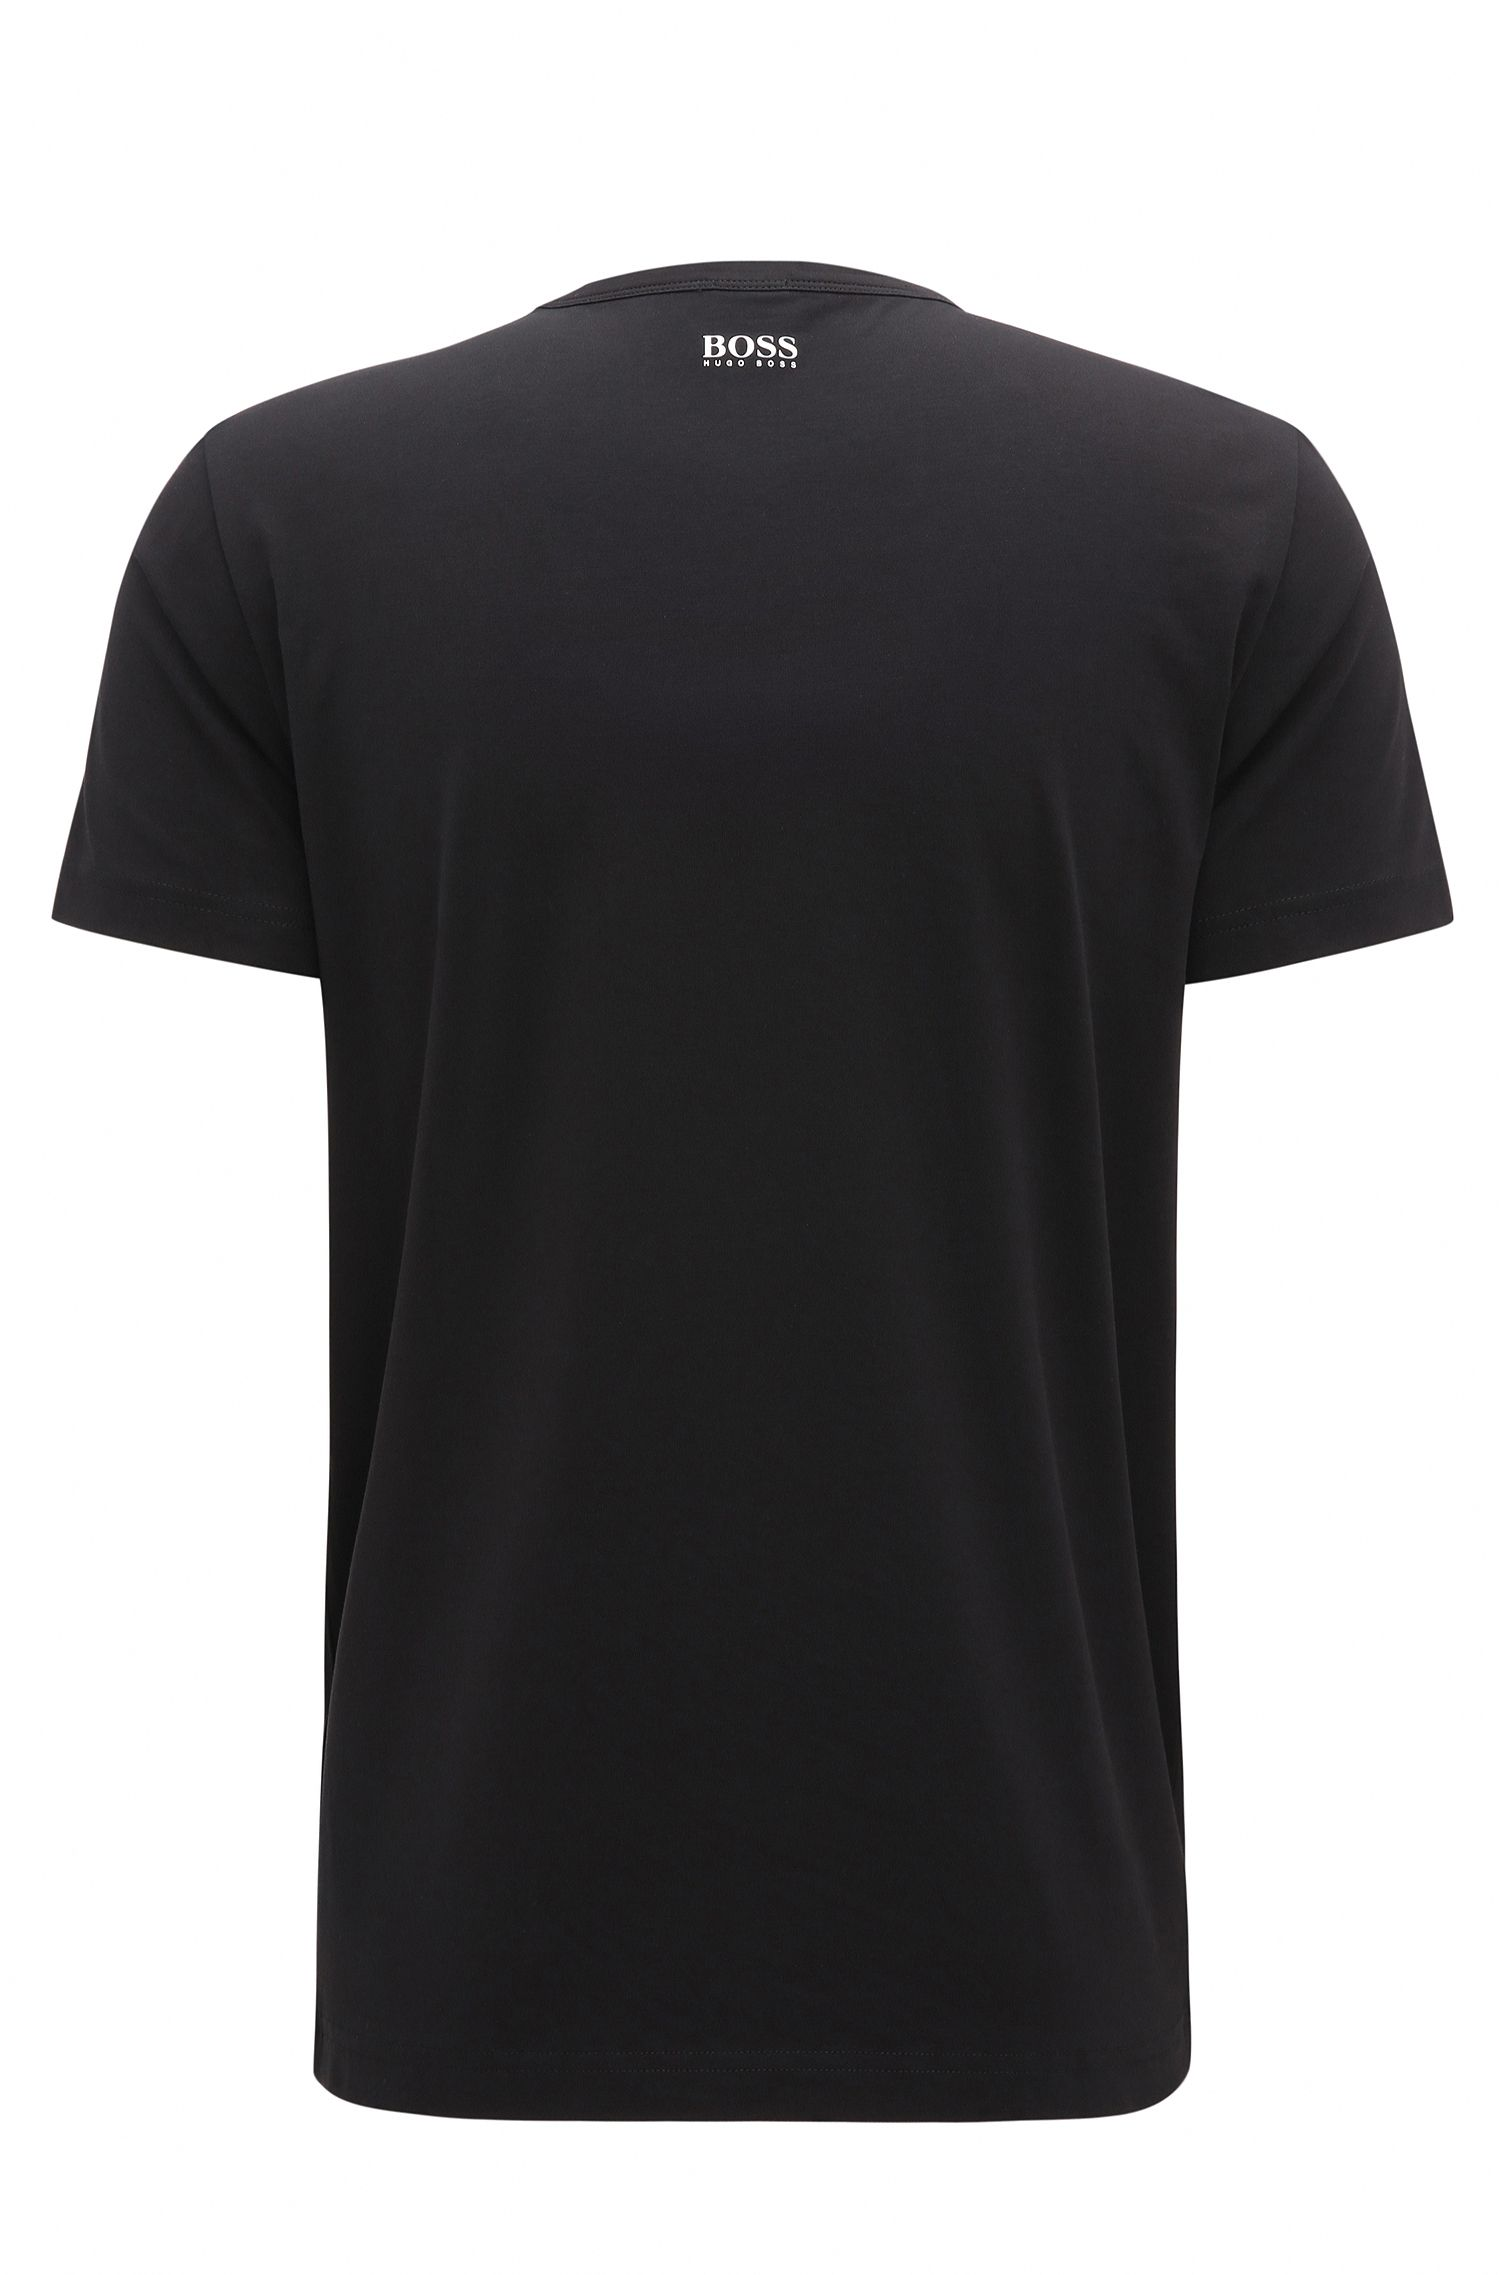 Regular-fit logo T-shirt in stretch cotton, Black